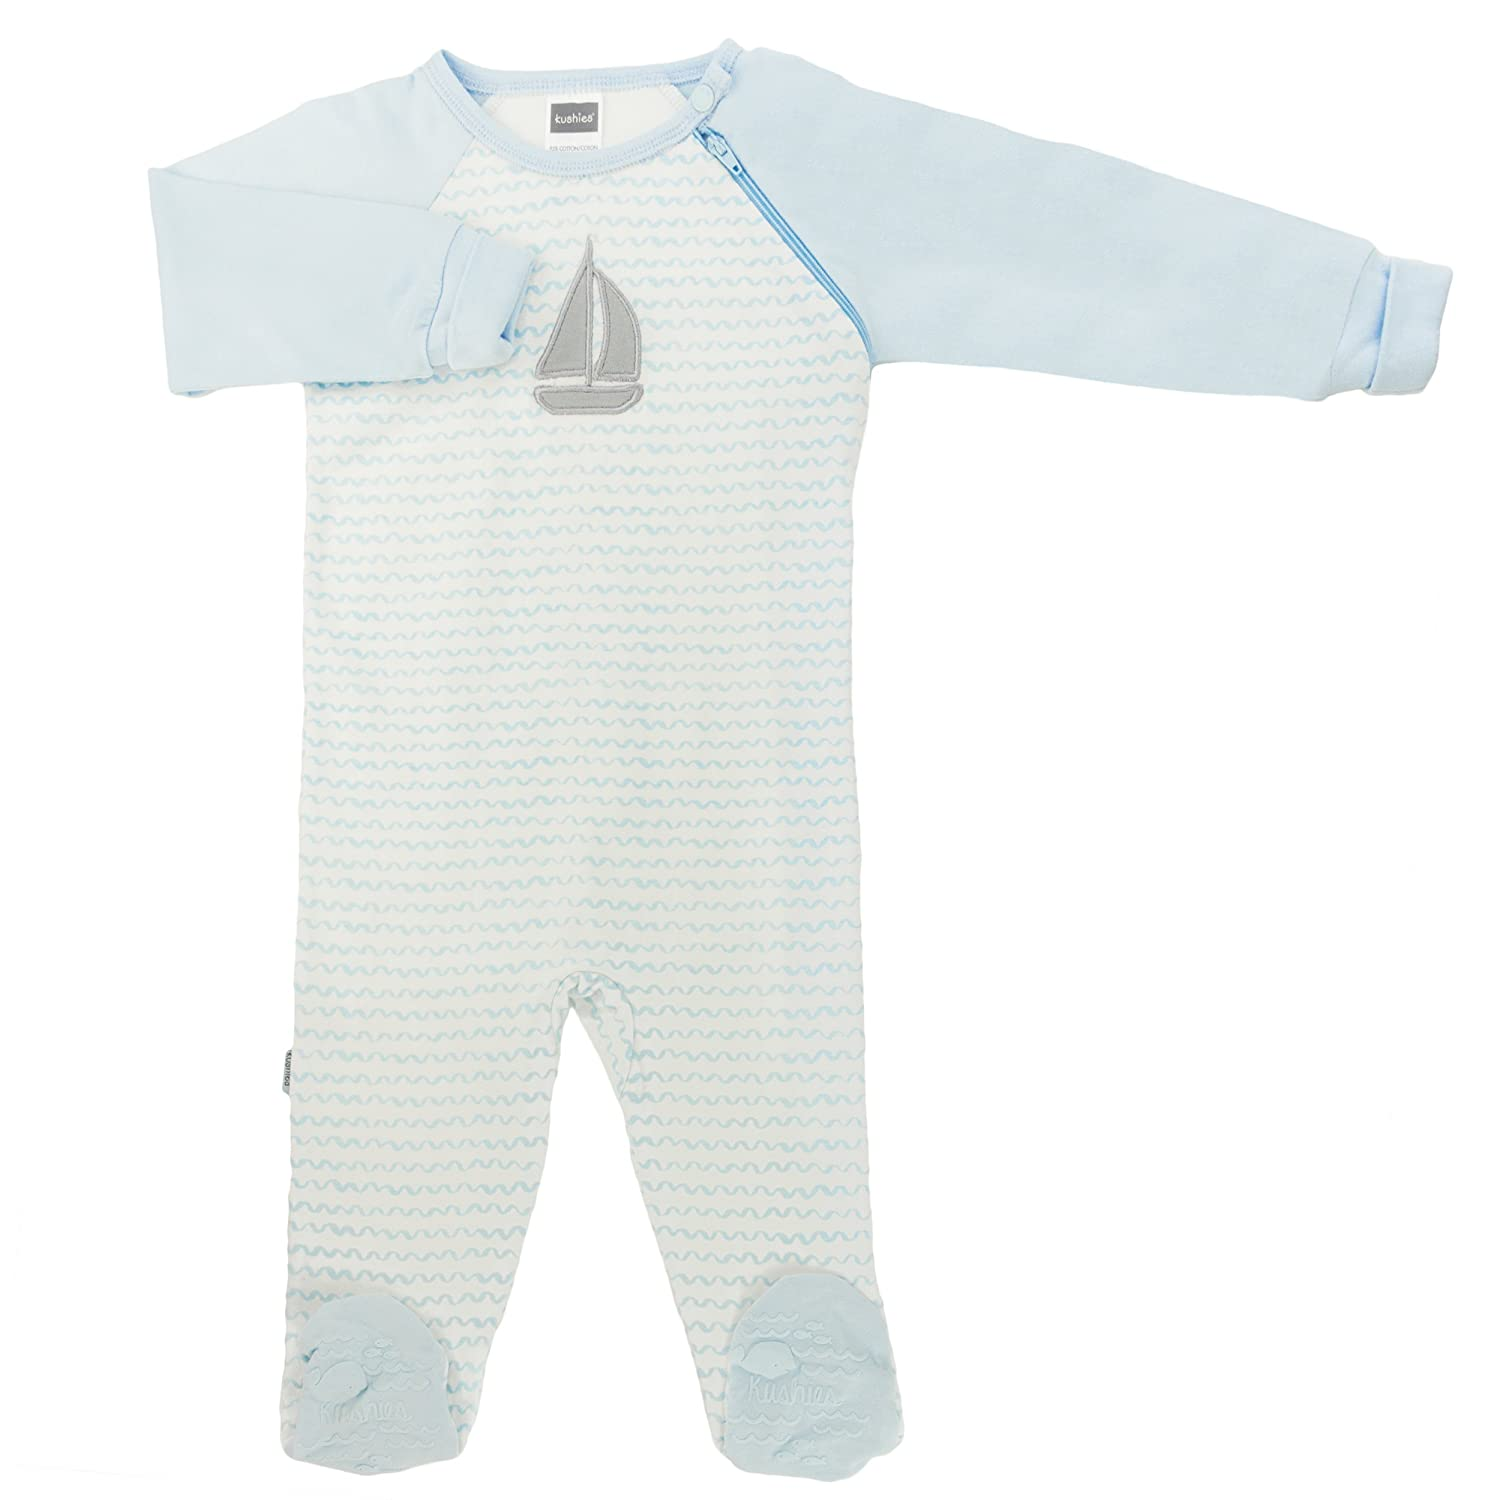 Kushies Baby Boys Side Zip Sleeper, Light Blue Print, 3 Months L16070312